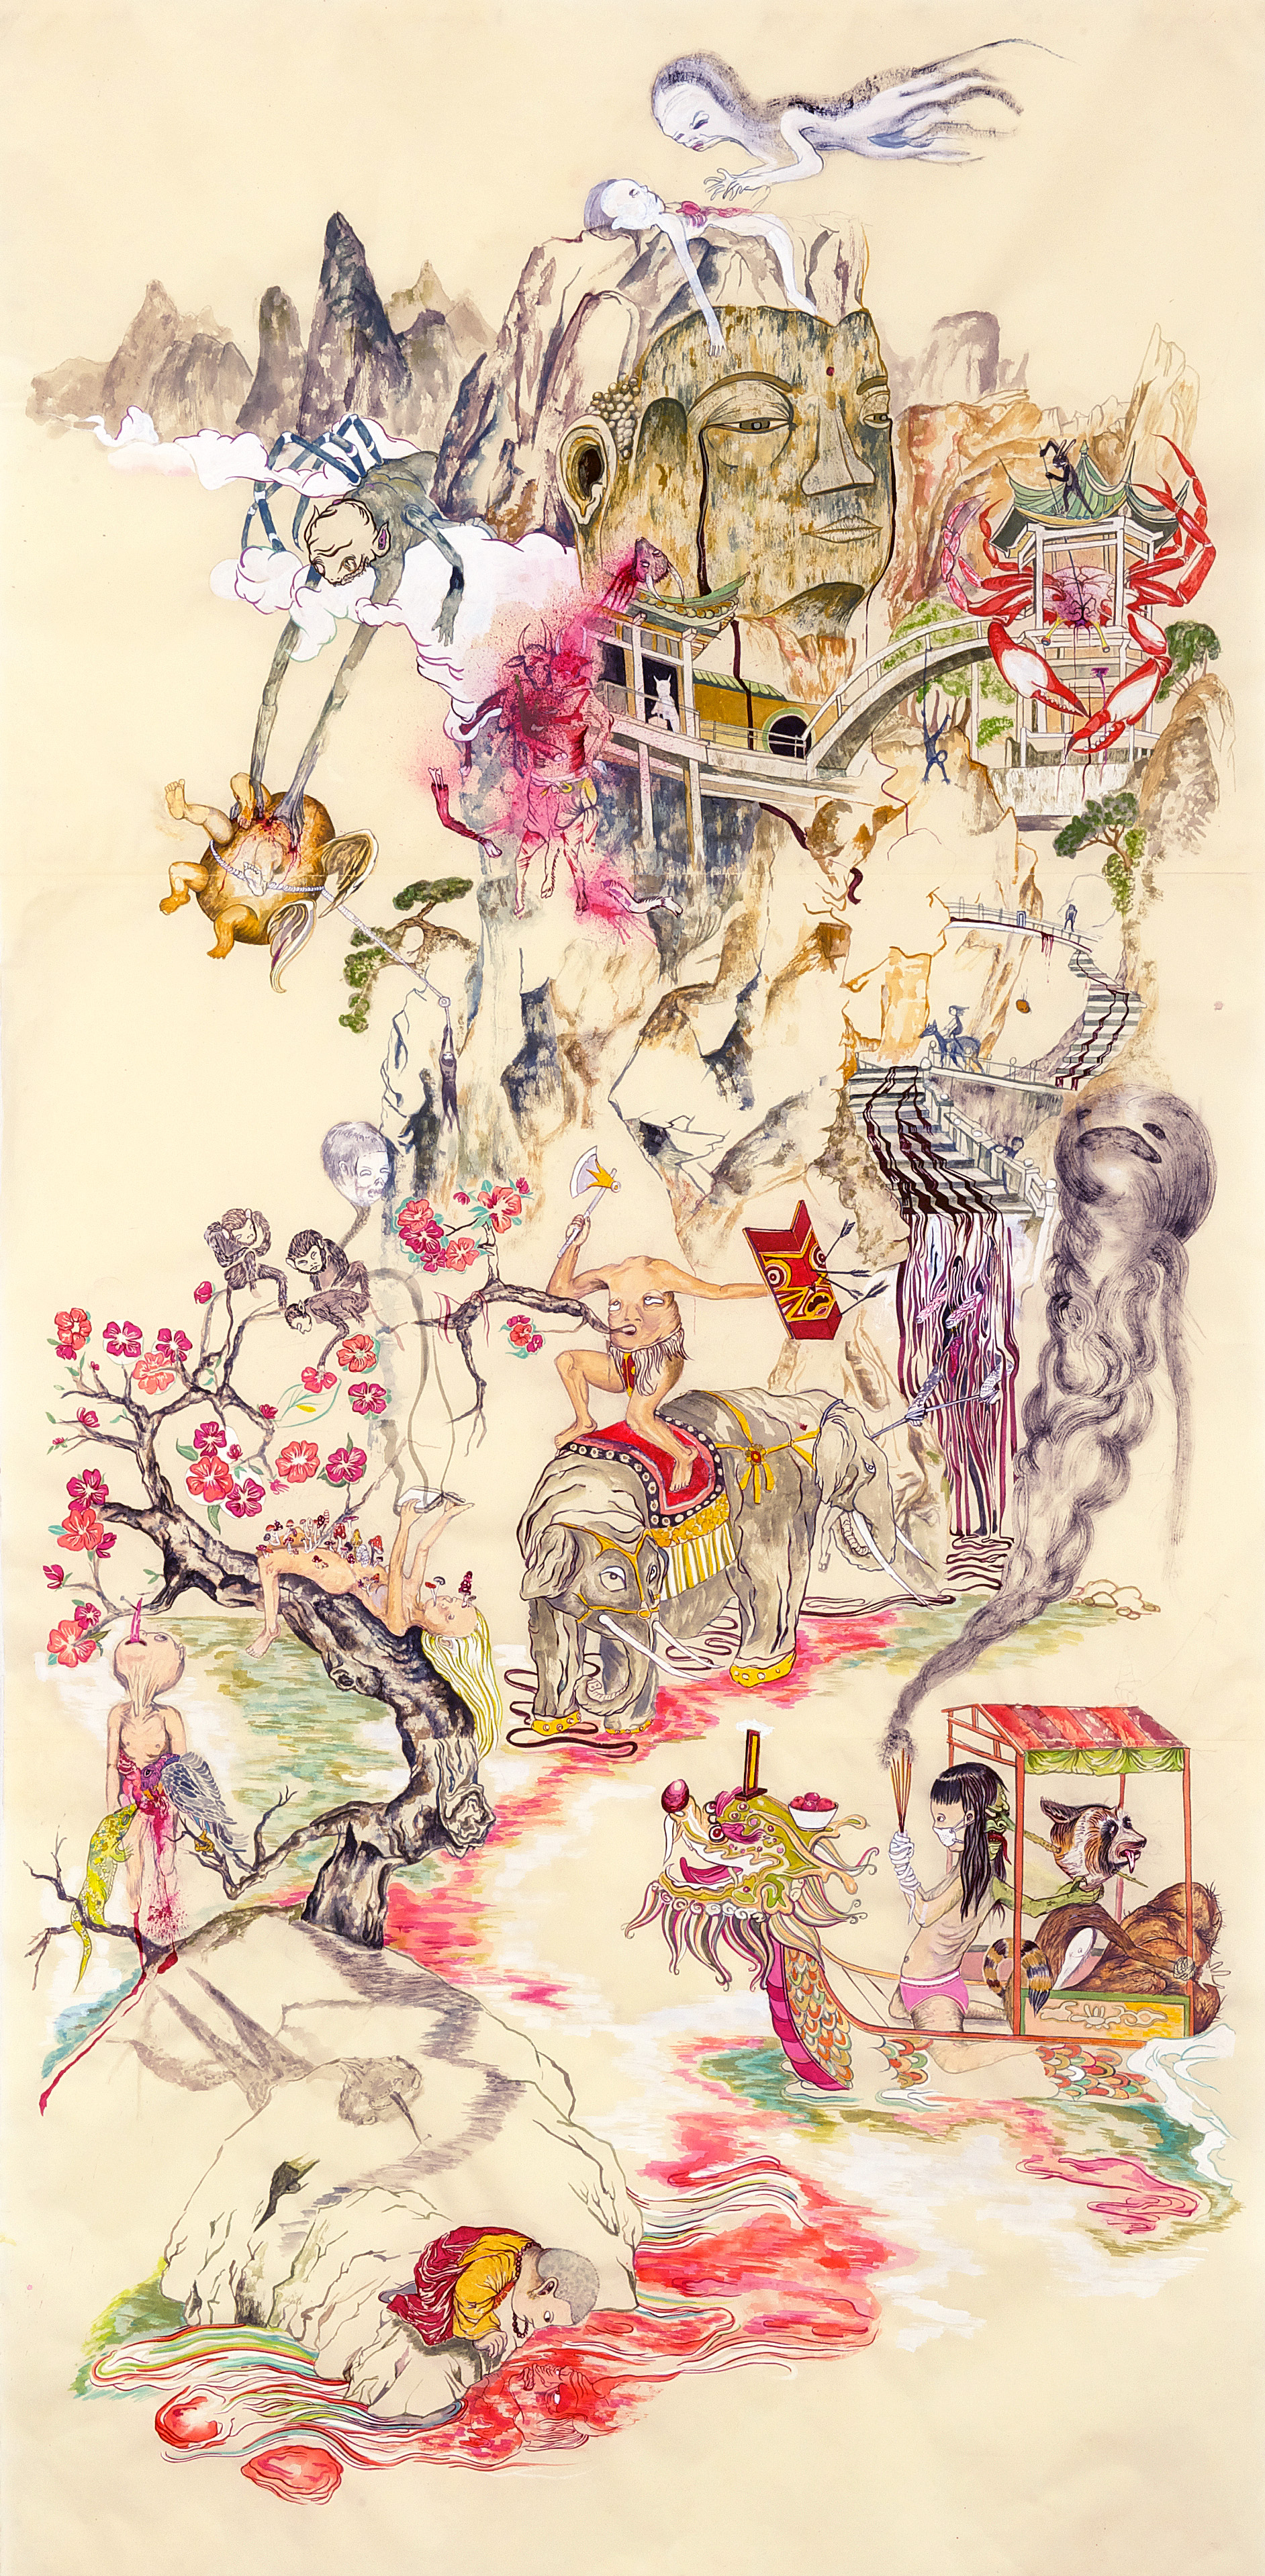 Howie Tsui 徐浩恩, Mount Abundance and the TipToe People #2 富饶山与跂踵国人之二, 2010, ink and paint pigment on mulberry paper 桑皮纸、颜料与墨, 191 x 96 cm